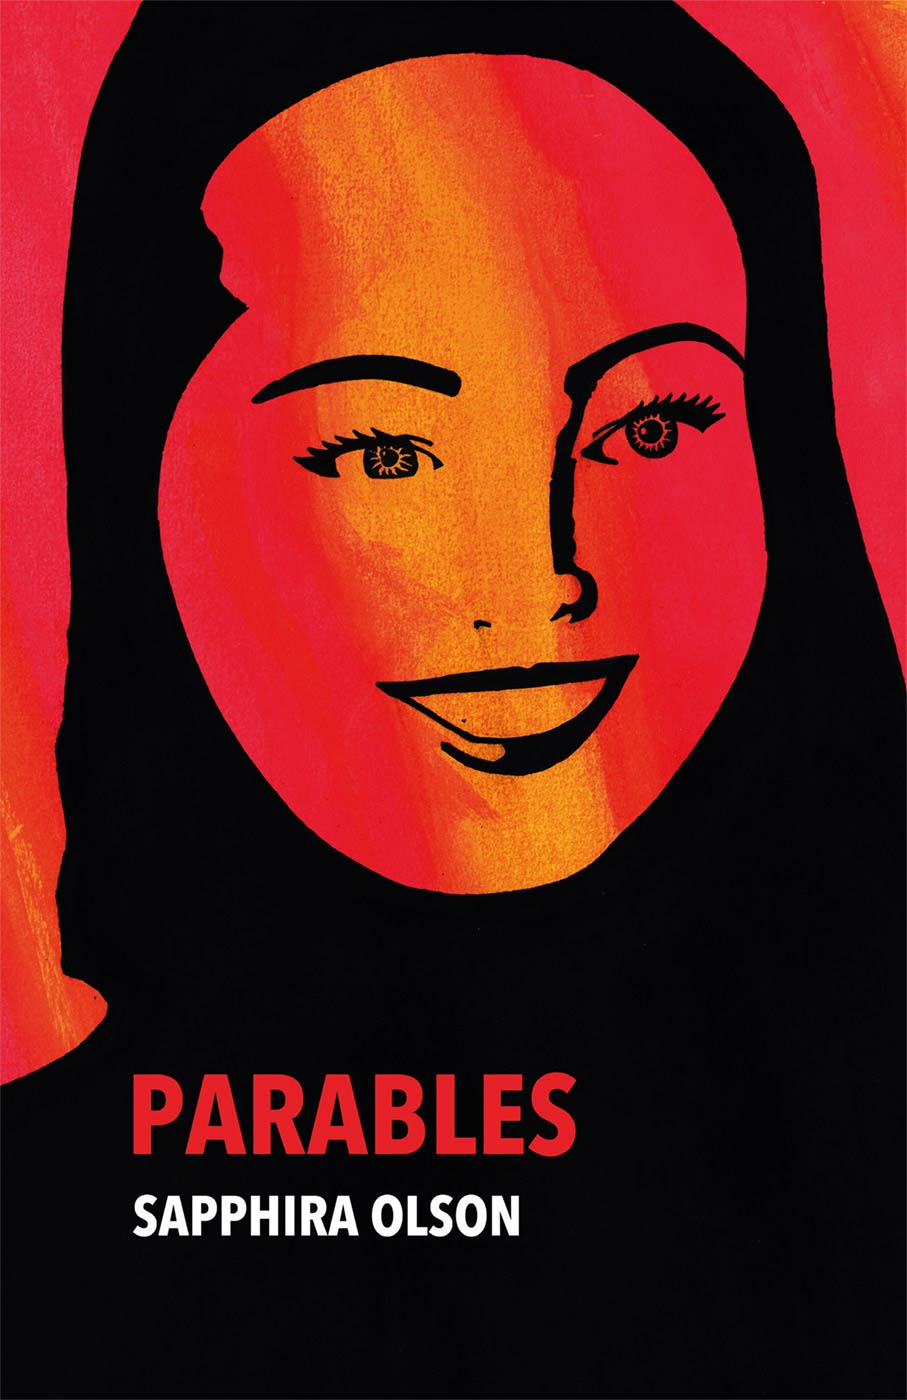 Parables by Sapphira Olson; Cover by Umberto Amundsen